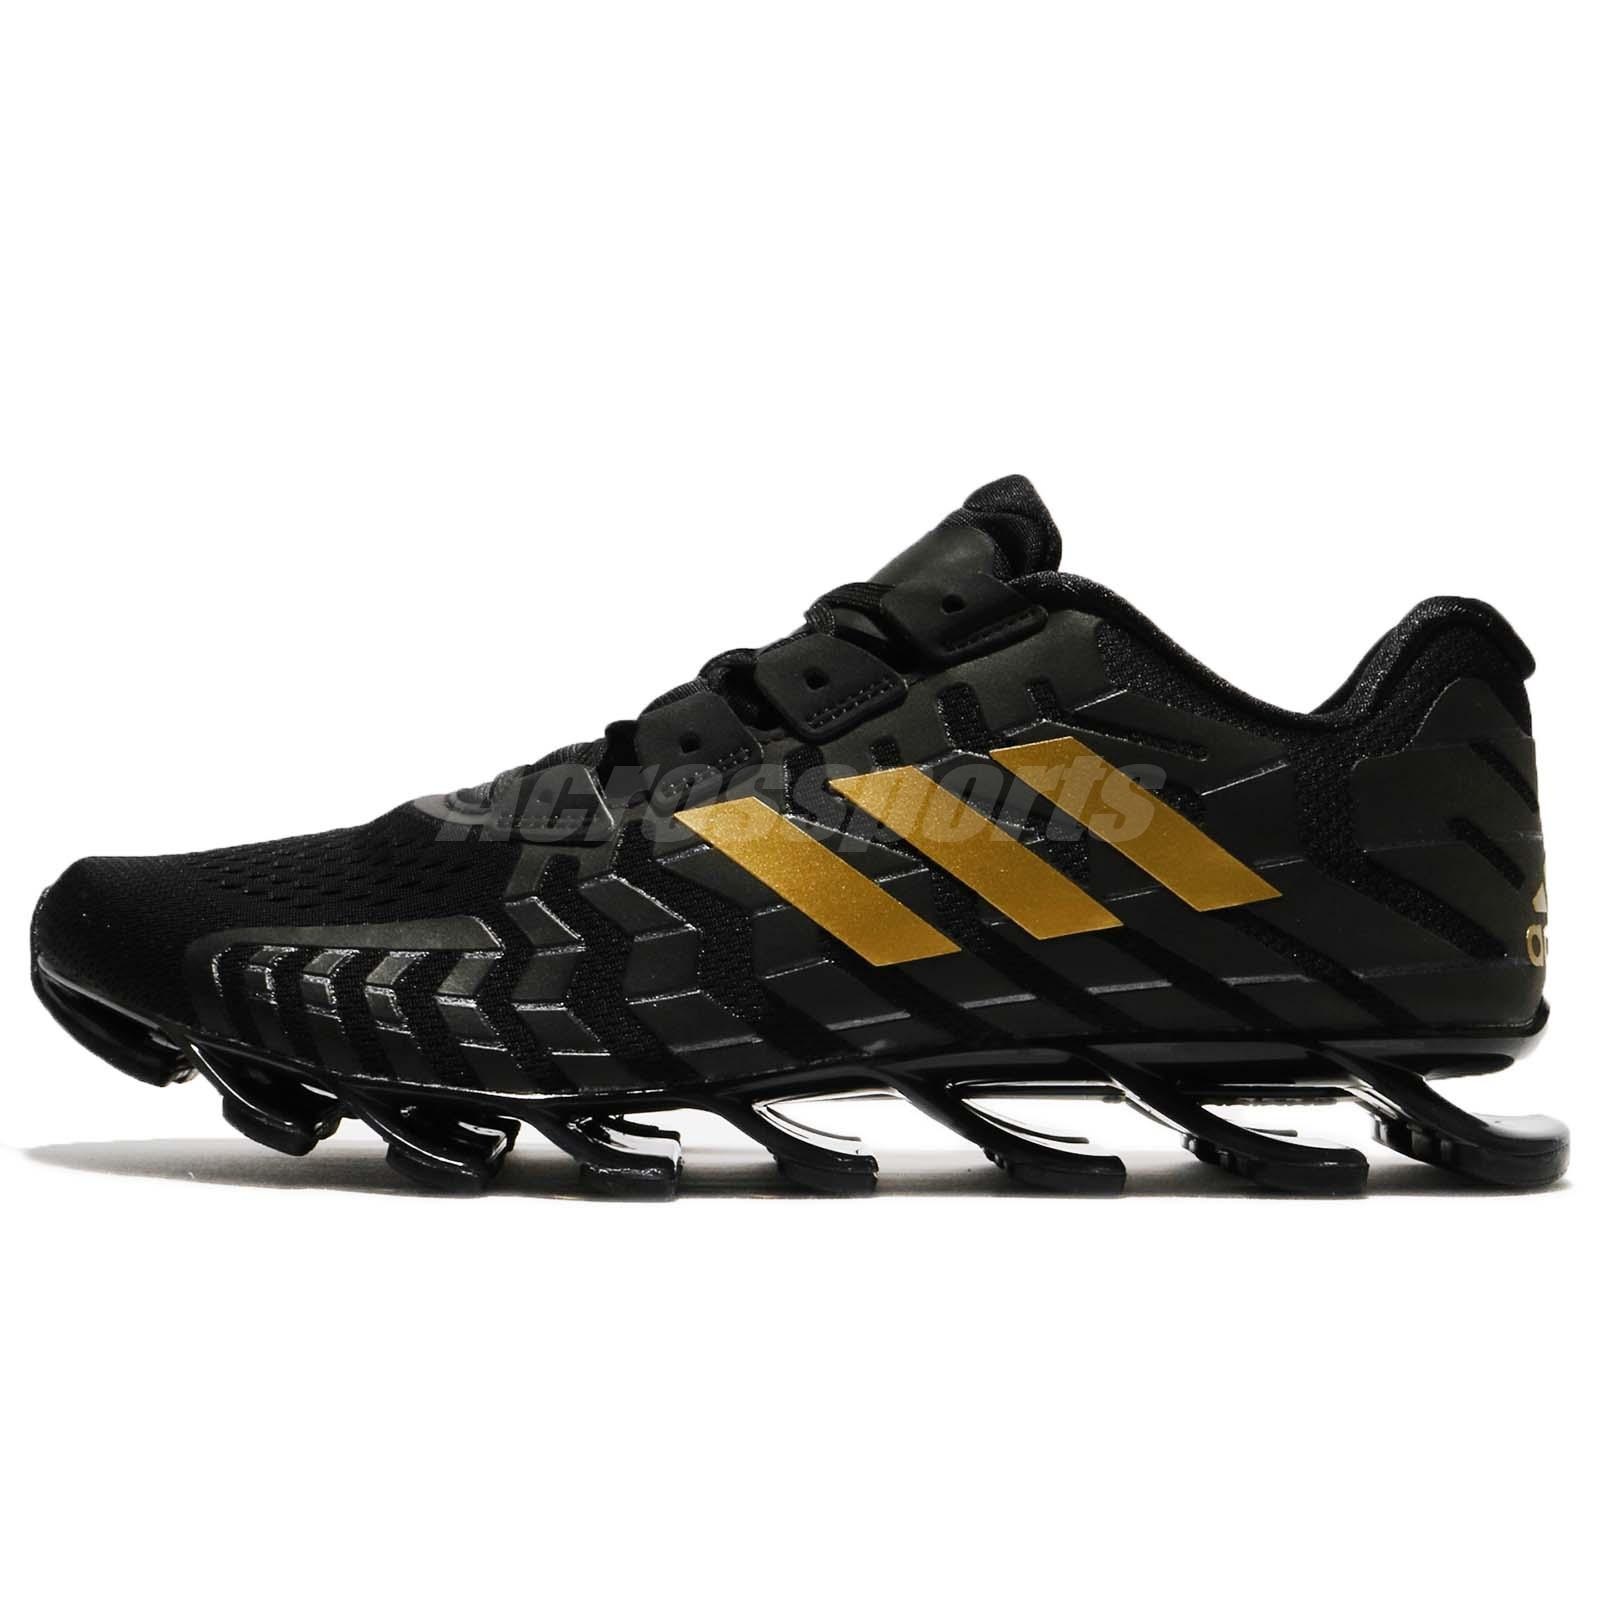 online store 90757 0d0c4 ... adidas Springblade Pro Black Gold Men Running Shoes Sneakers Trainers  CQ0662 ...